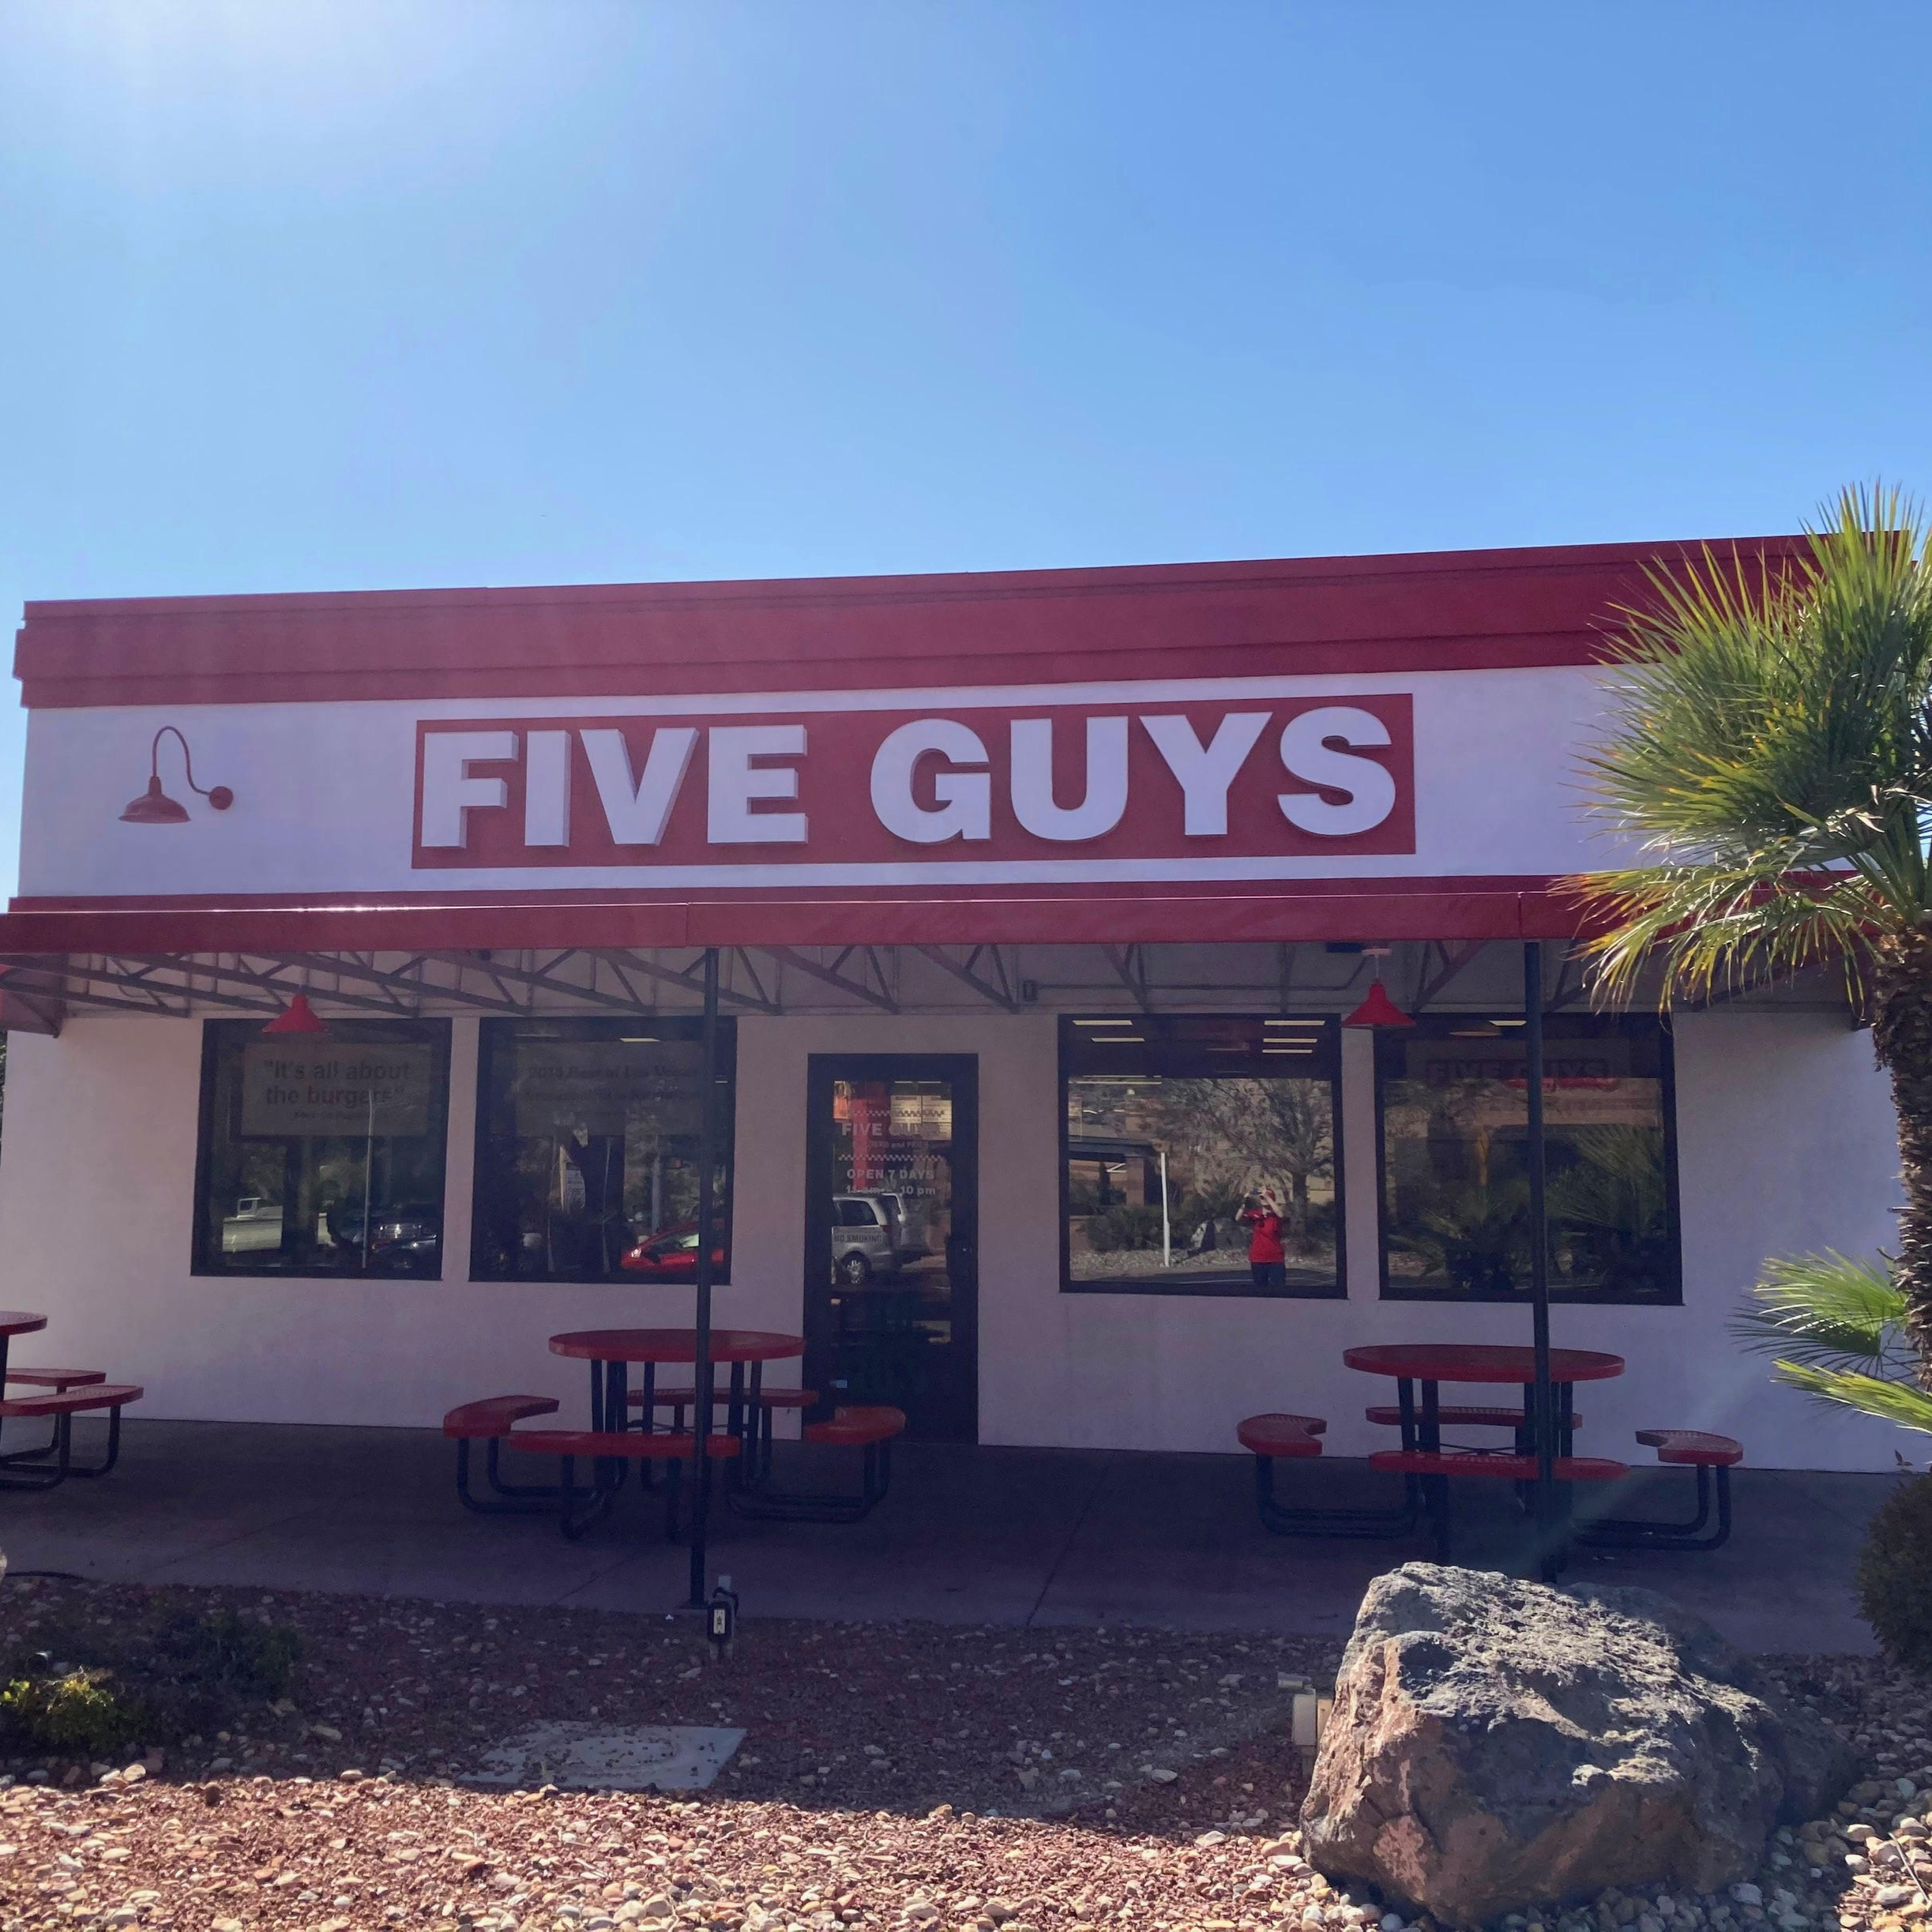 Five Guys at 1279 East 100 South in St. George, UT.